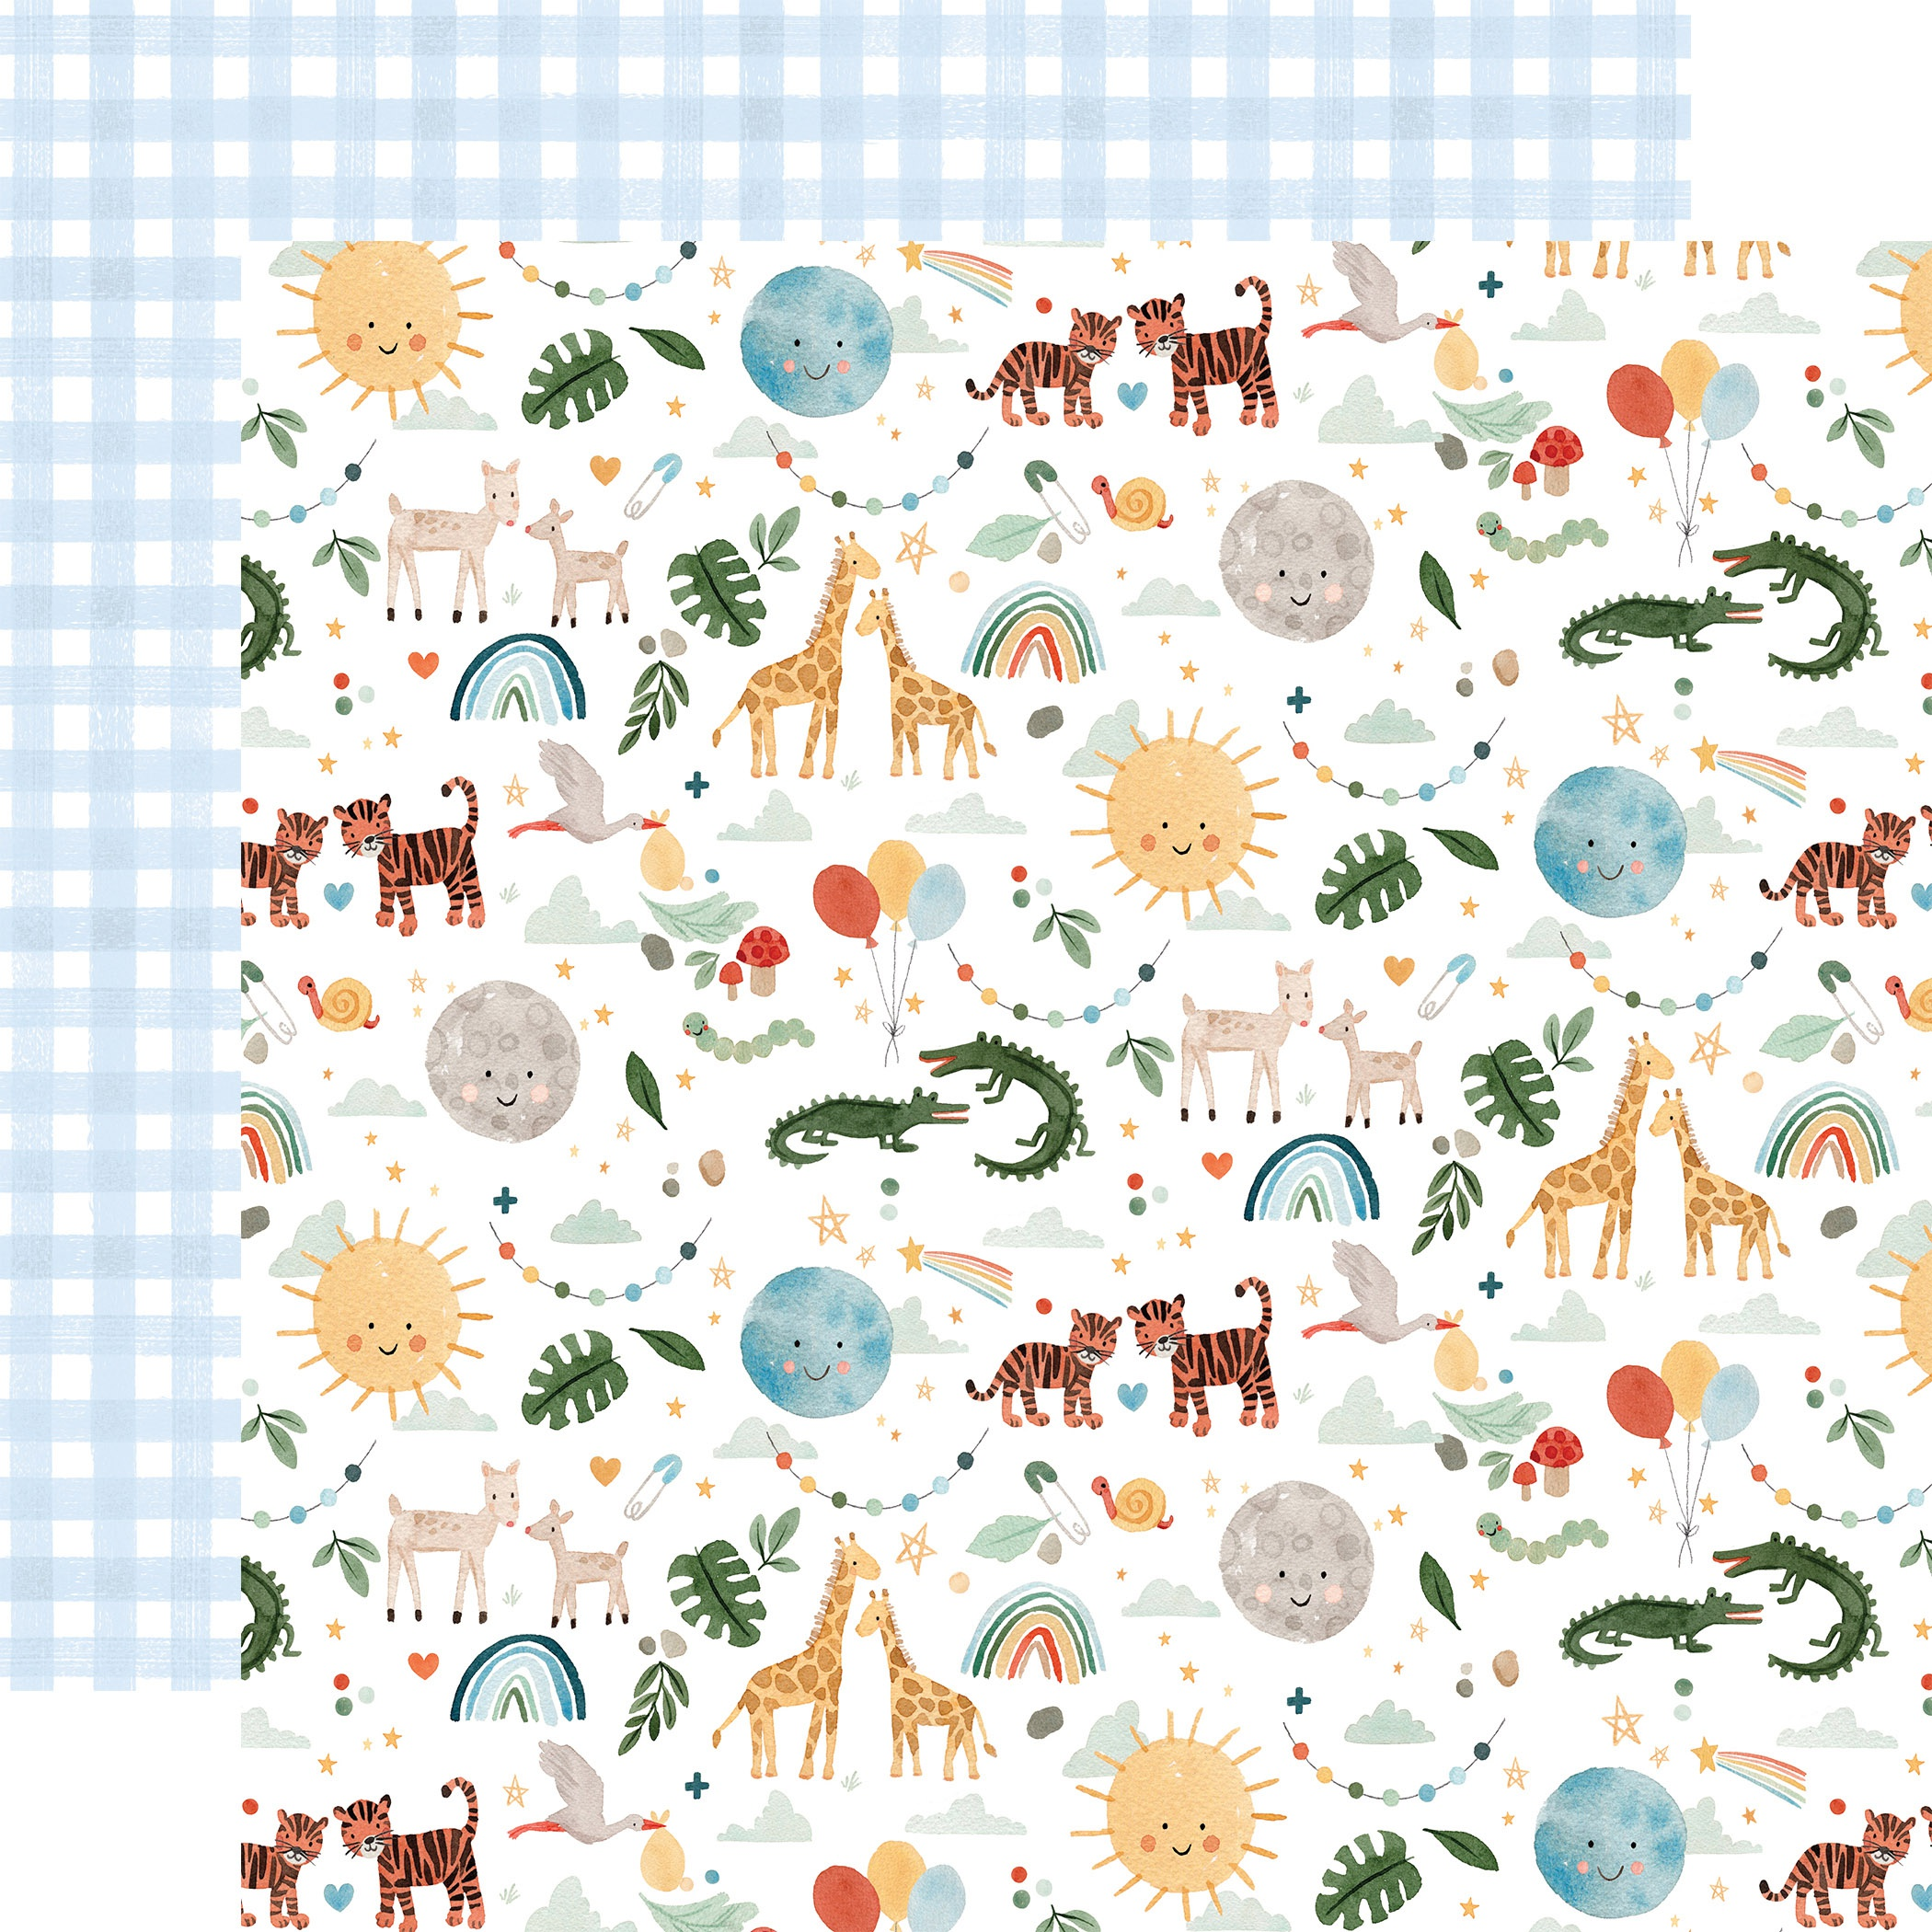 Echo Park - Welcome Baby Boy - ANIMALS - 12x12 Double-Sided Paper